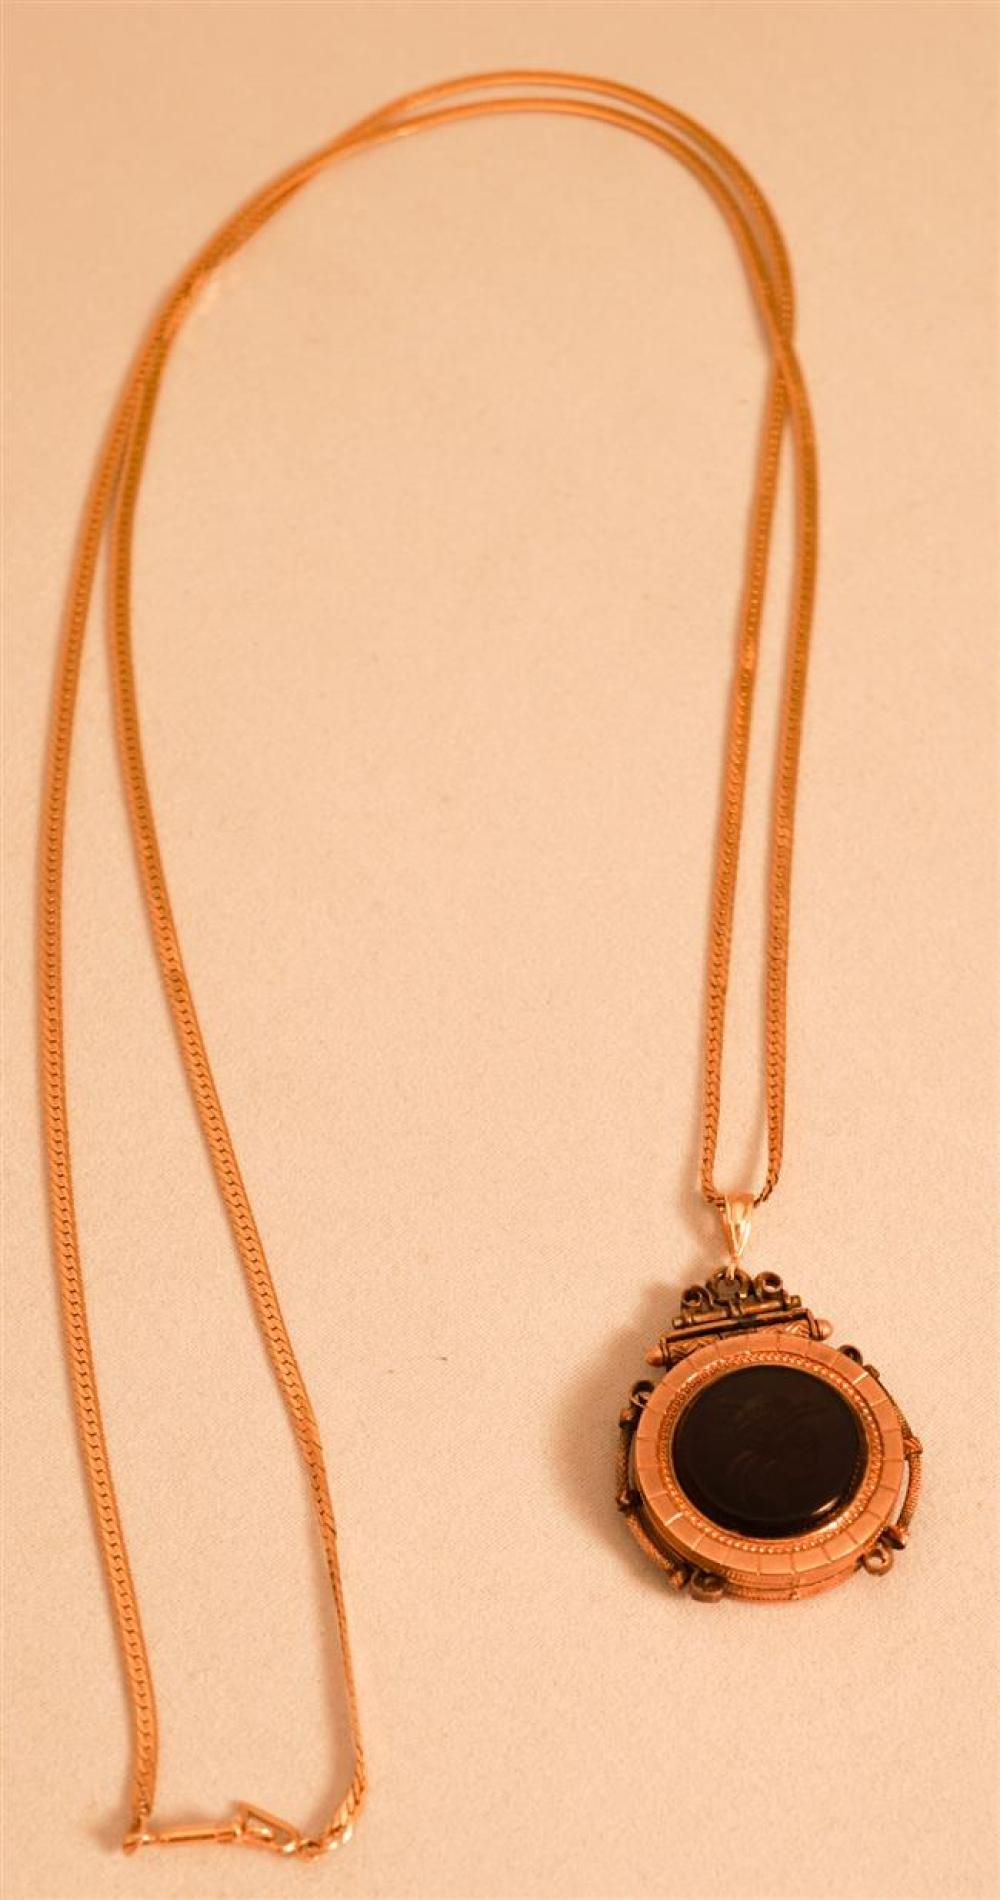 14 Karat Yellow Gold Necklace with Victorian Gold Filled Intaglio Black Onyx Pendant, 4.4 weighable dwt., Length of Chain: 30 in